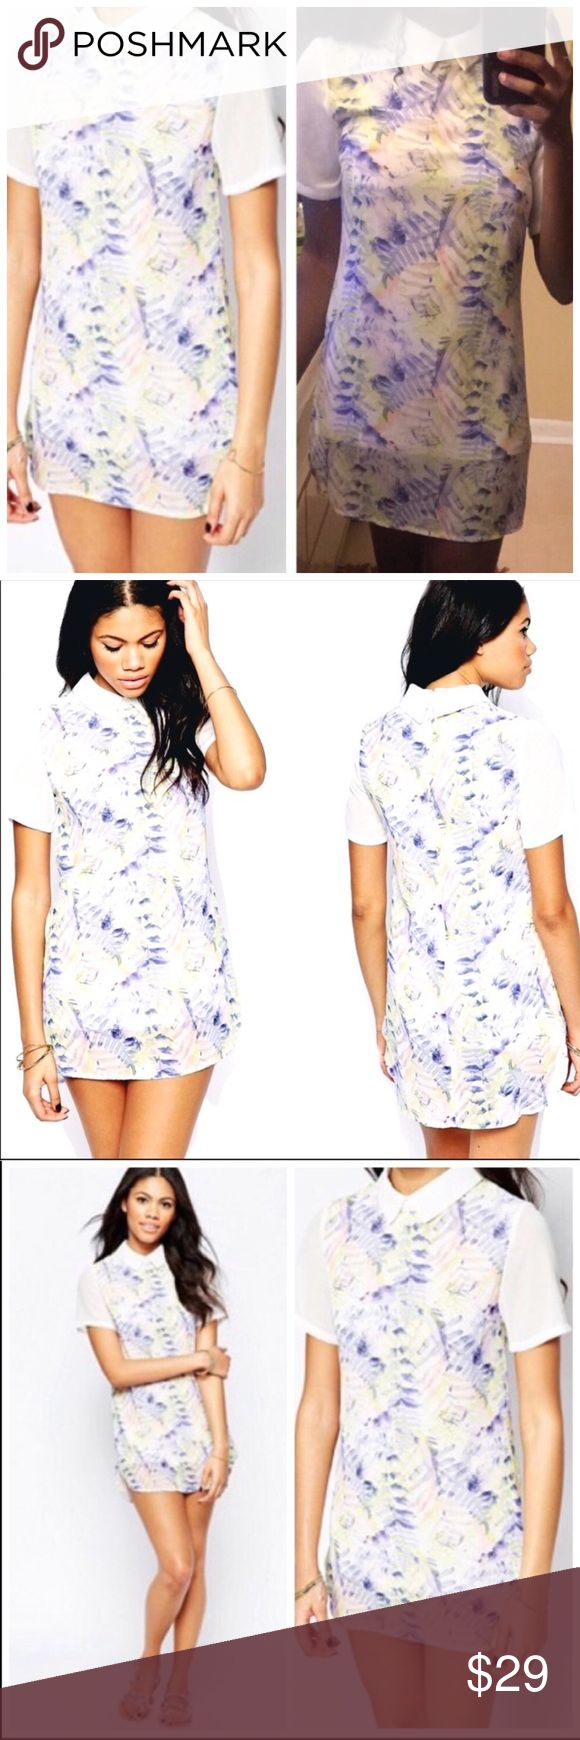 Asos Daisy Street Printed Shirt Dress Daisy street by Asos Shirt dress. Pretty curved hem lined dress with a sheer printed overlay and contrast white color. Very comfortable and super cute with tennis shoes, boots or sandals. Short sleeves with a back zipper closure. Size is Medium- i don't suggest larger than a size 8. Measurements available upon request. White and soft blue colors. ASOS Dresses